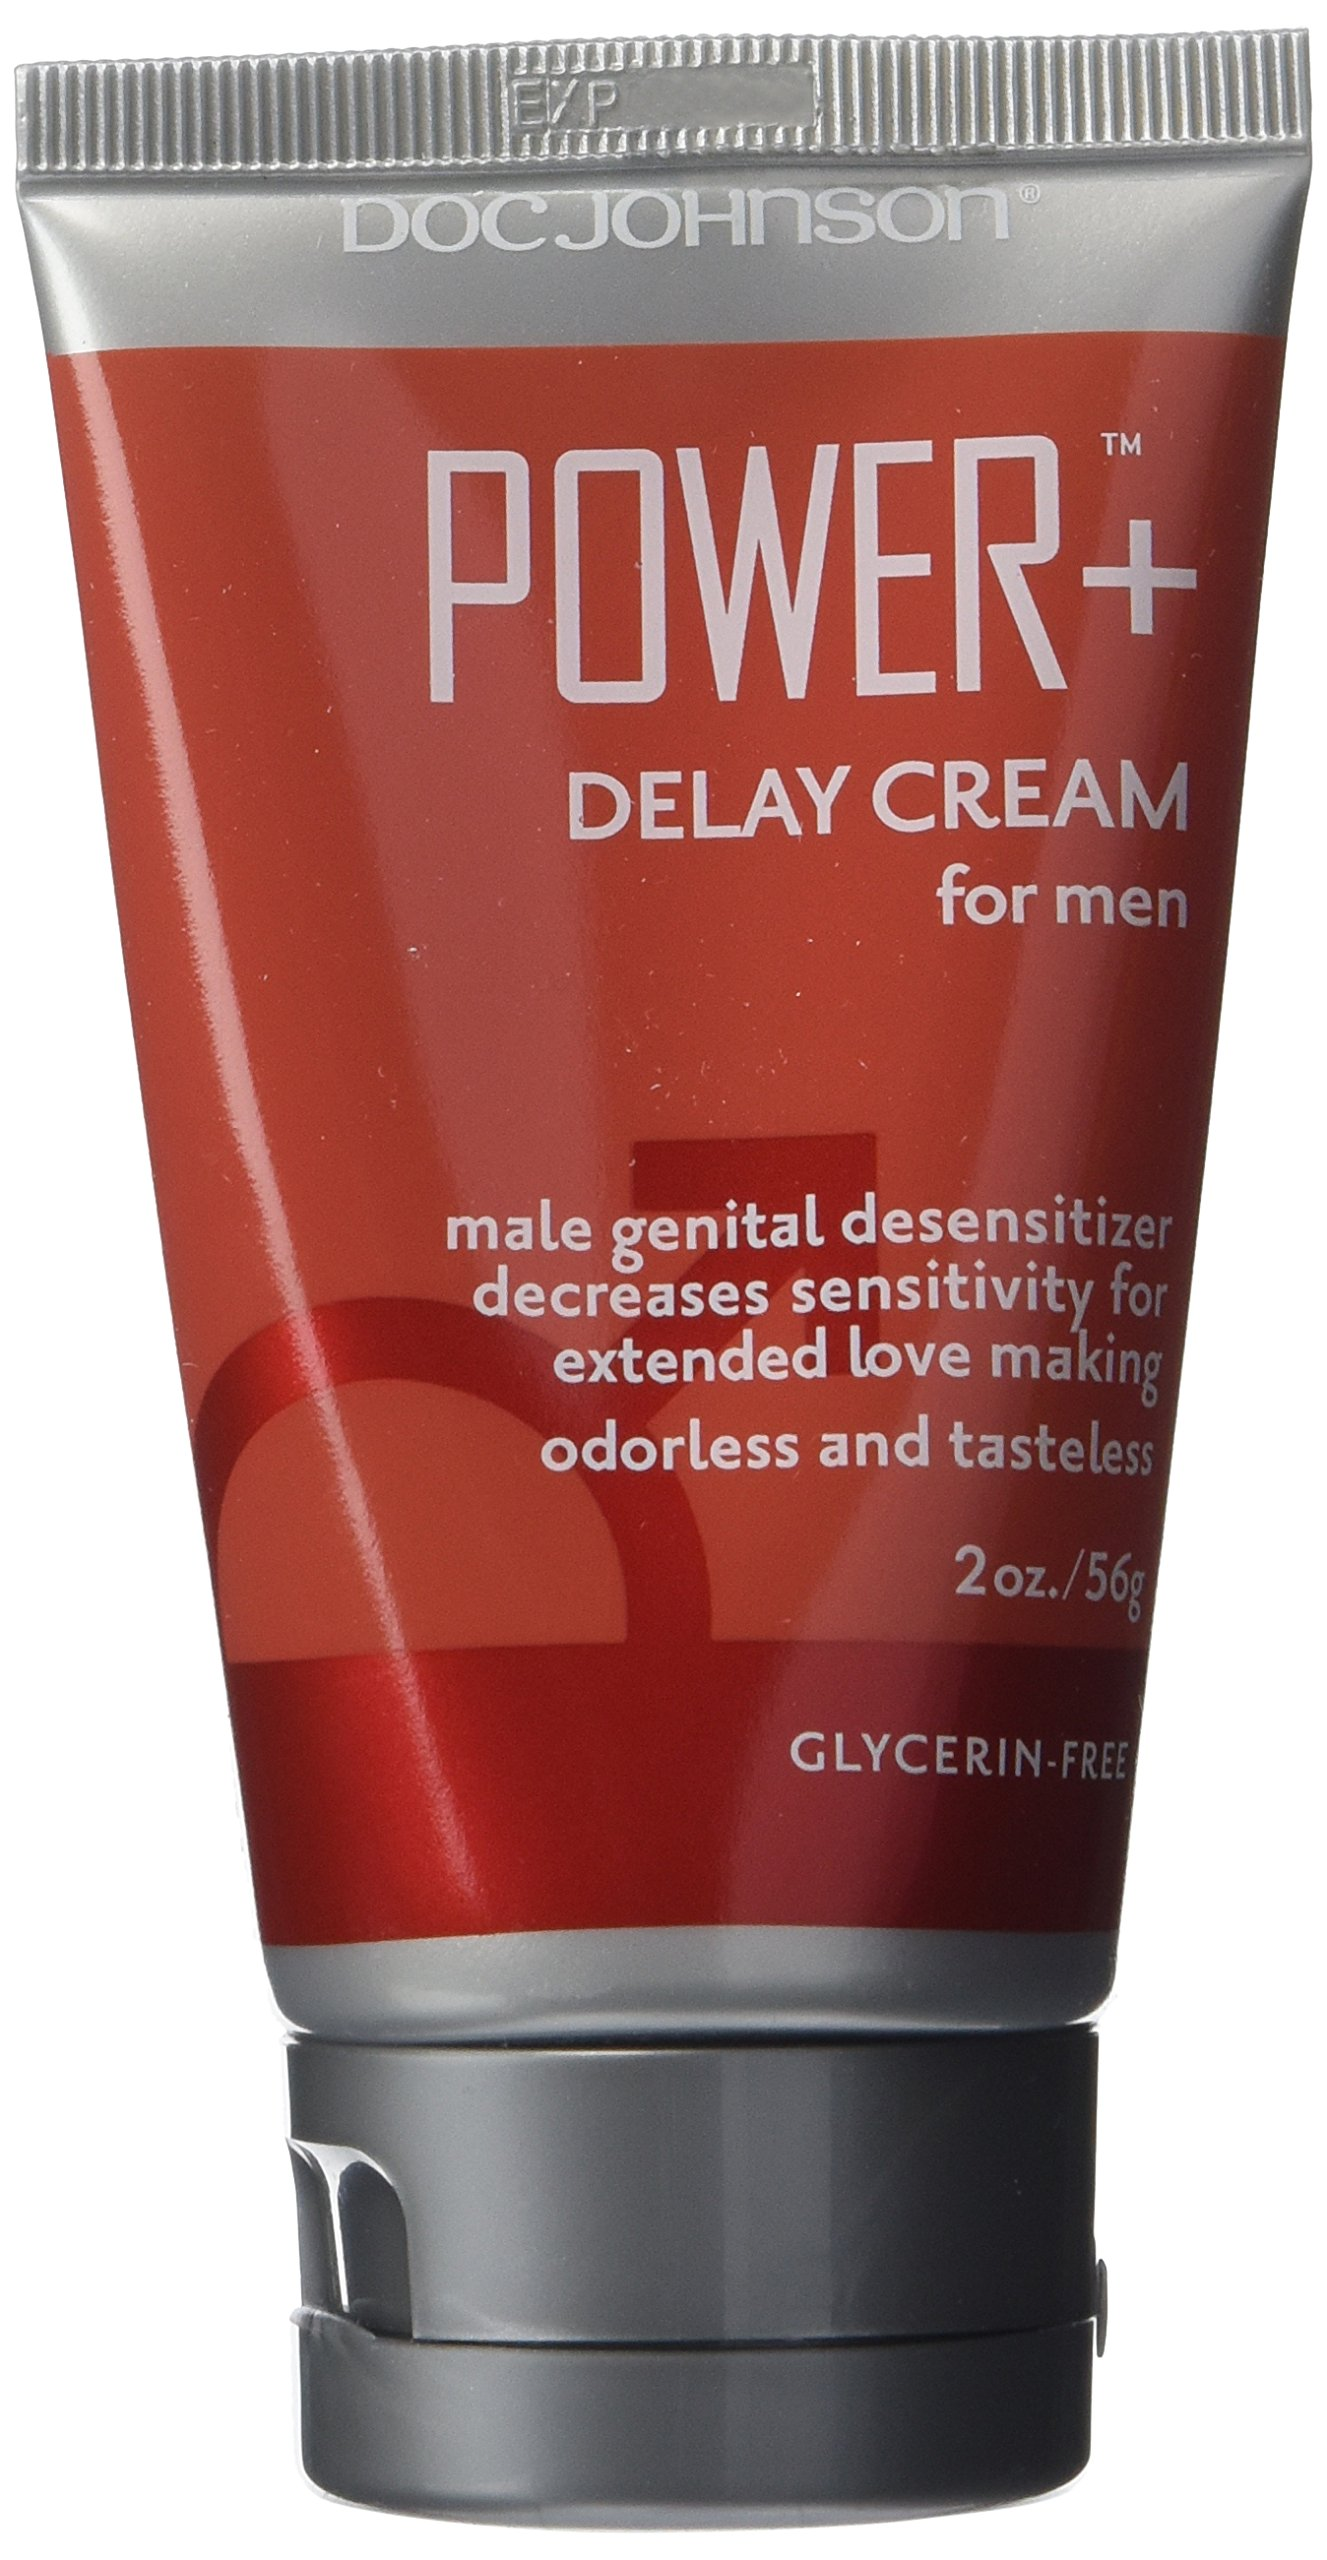 Rather valuable orgasm delay cream are absolutely